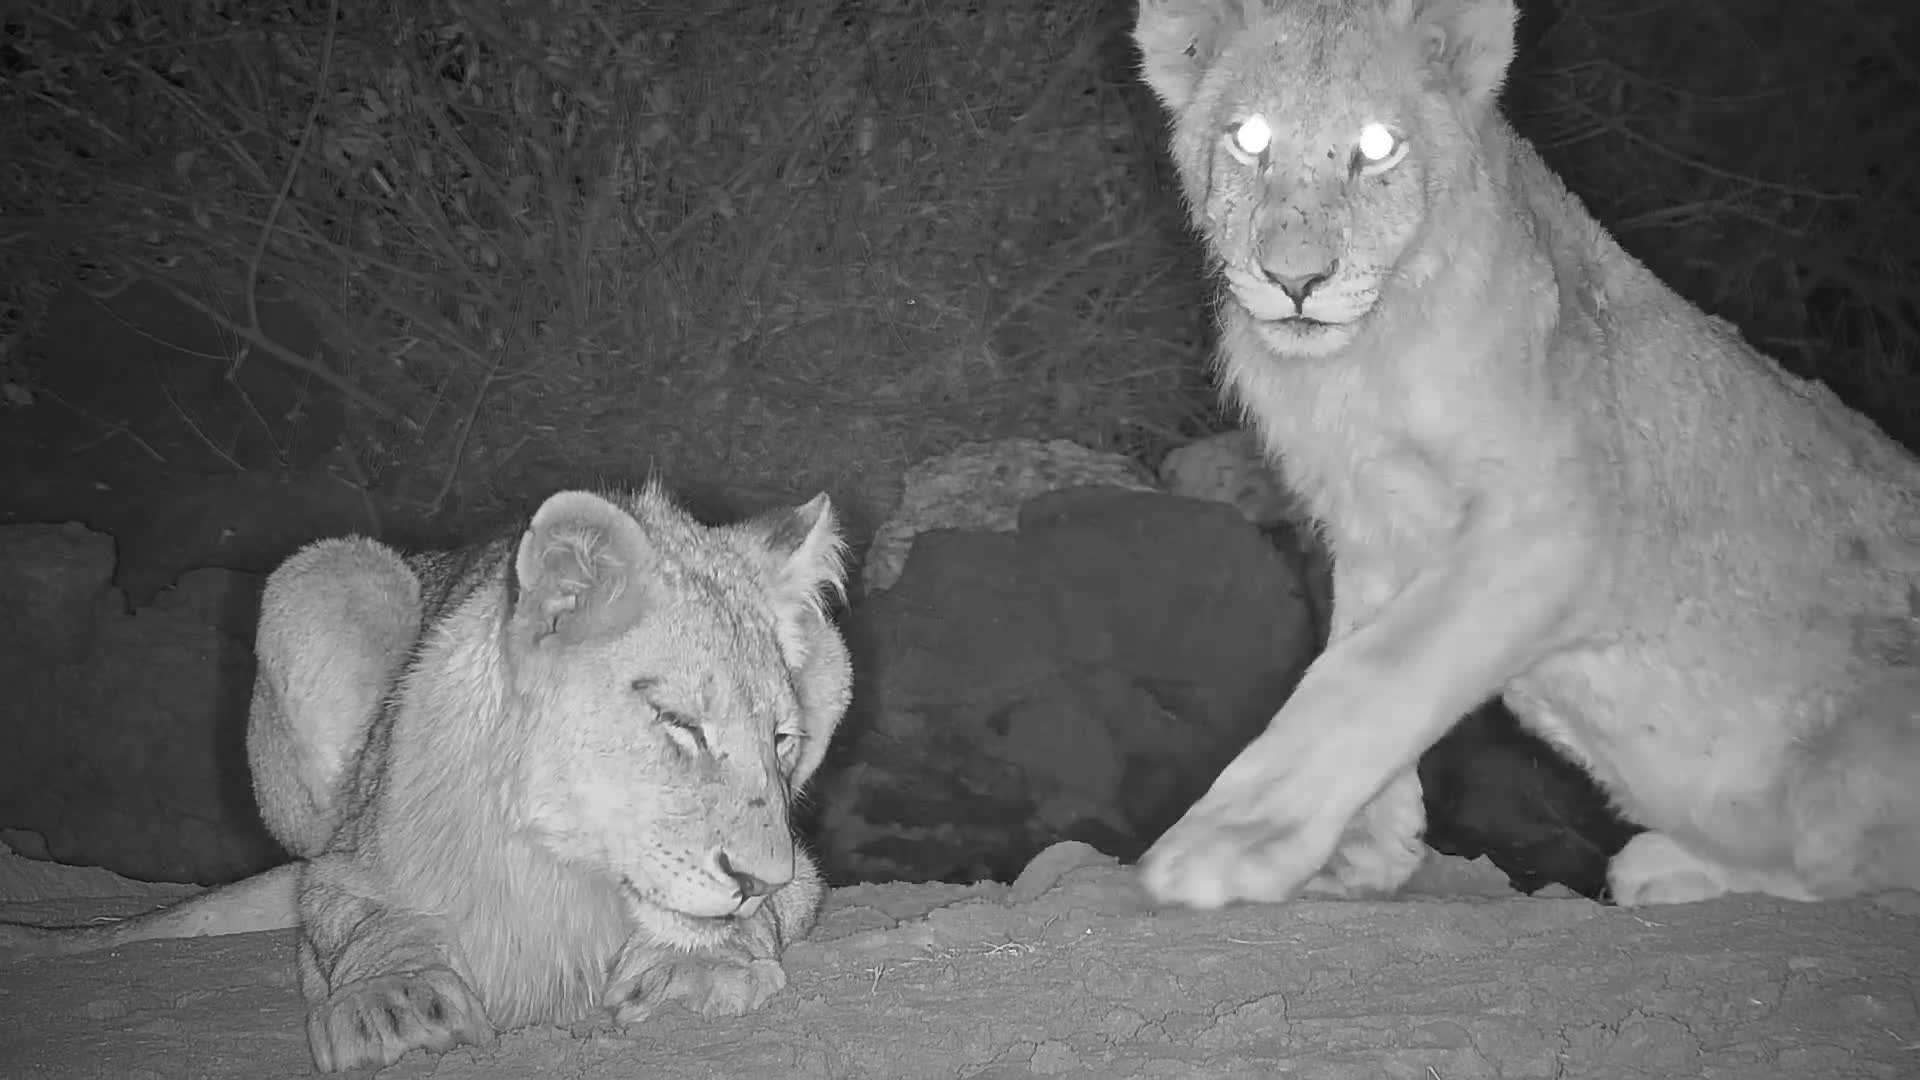 VIDEO: Lions arriving at the waterhole for a drink